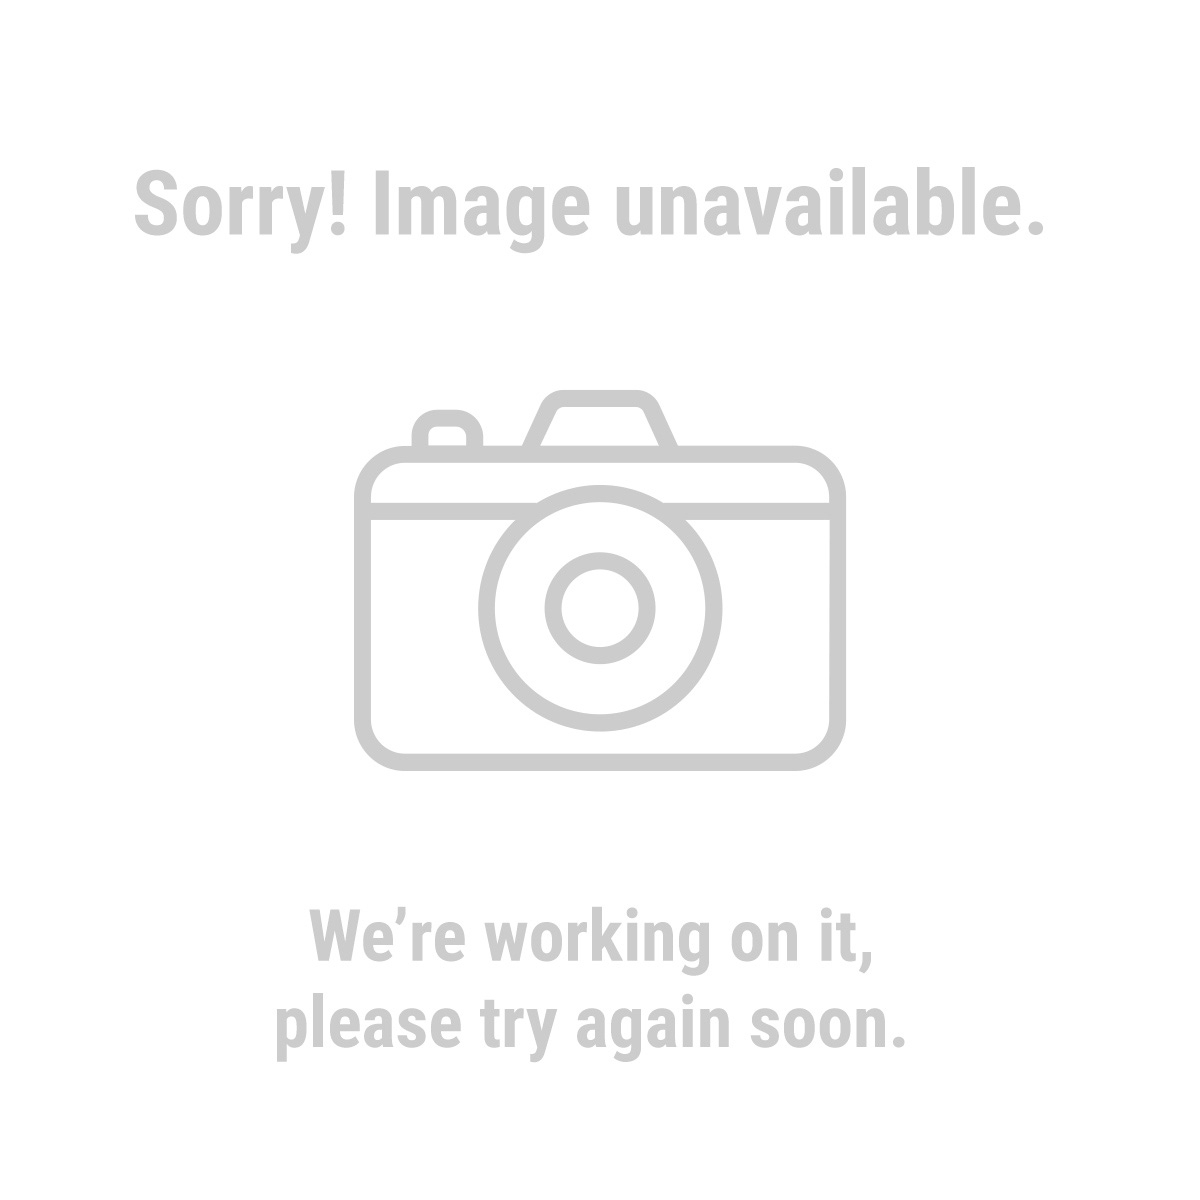 Interdynamics 97272 12 oz. Arctic Freeze Refrigerant